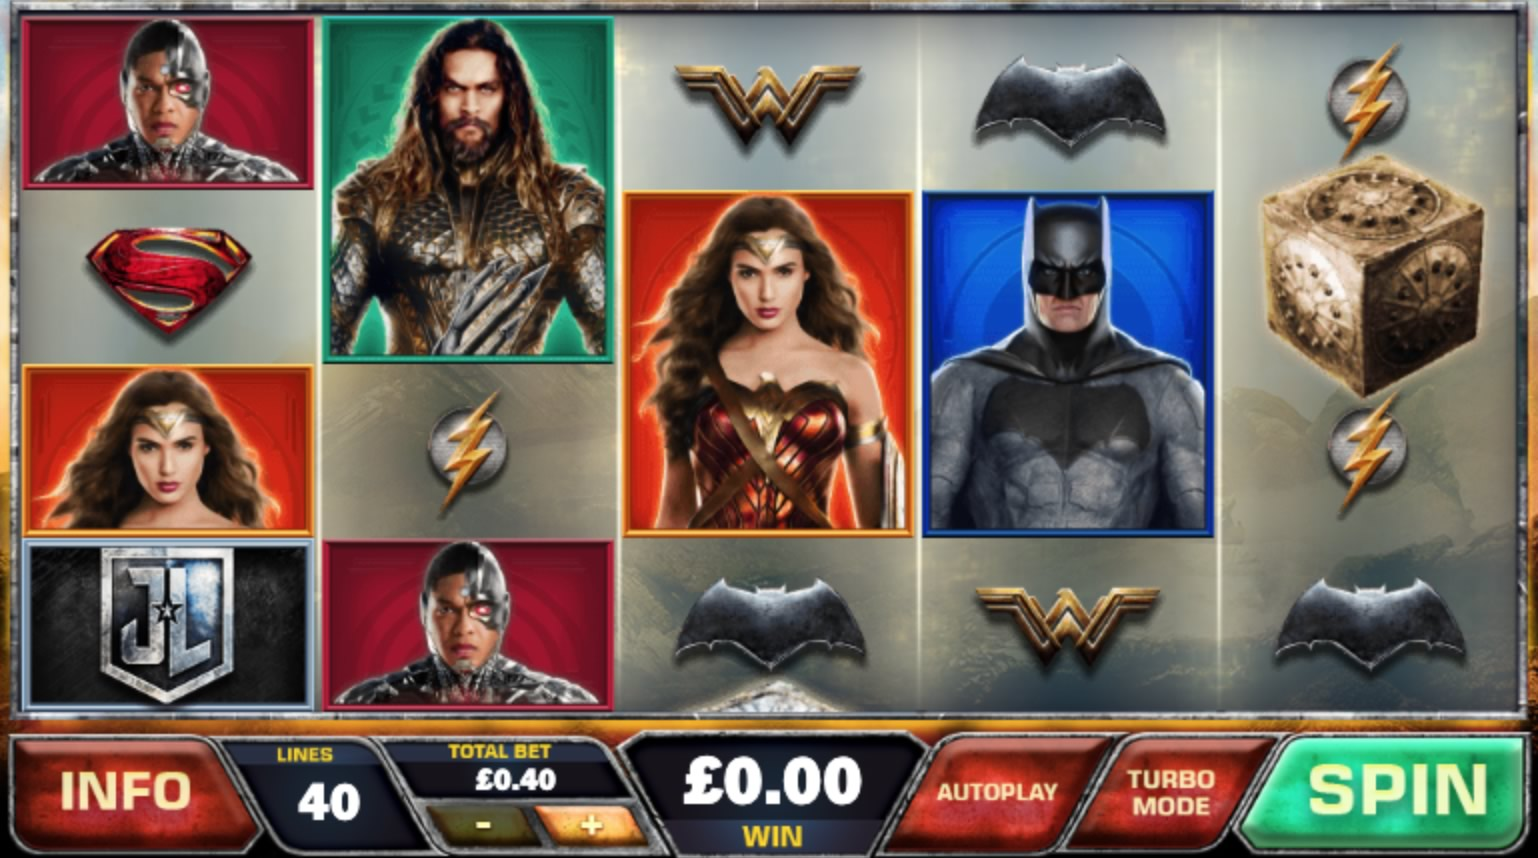 Popular DC Universe characters featuring in online slot